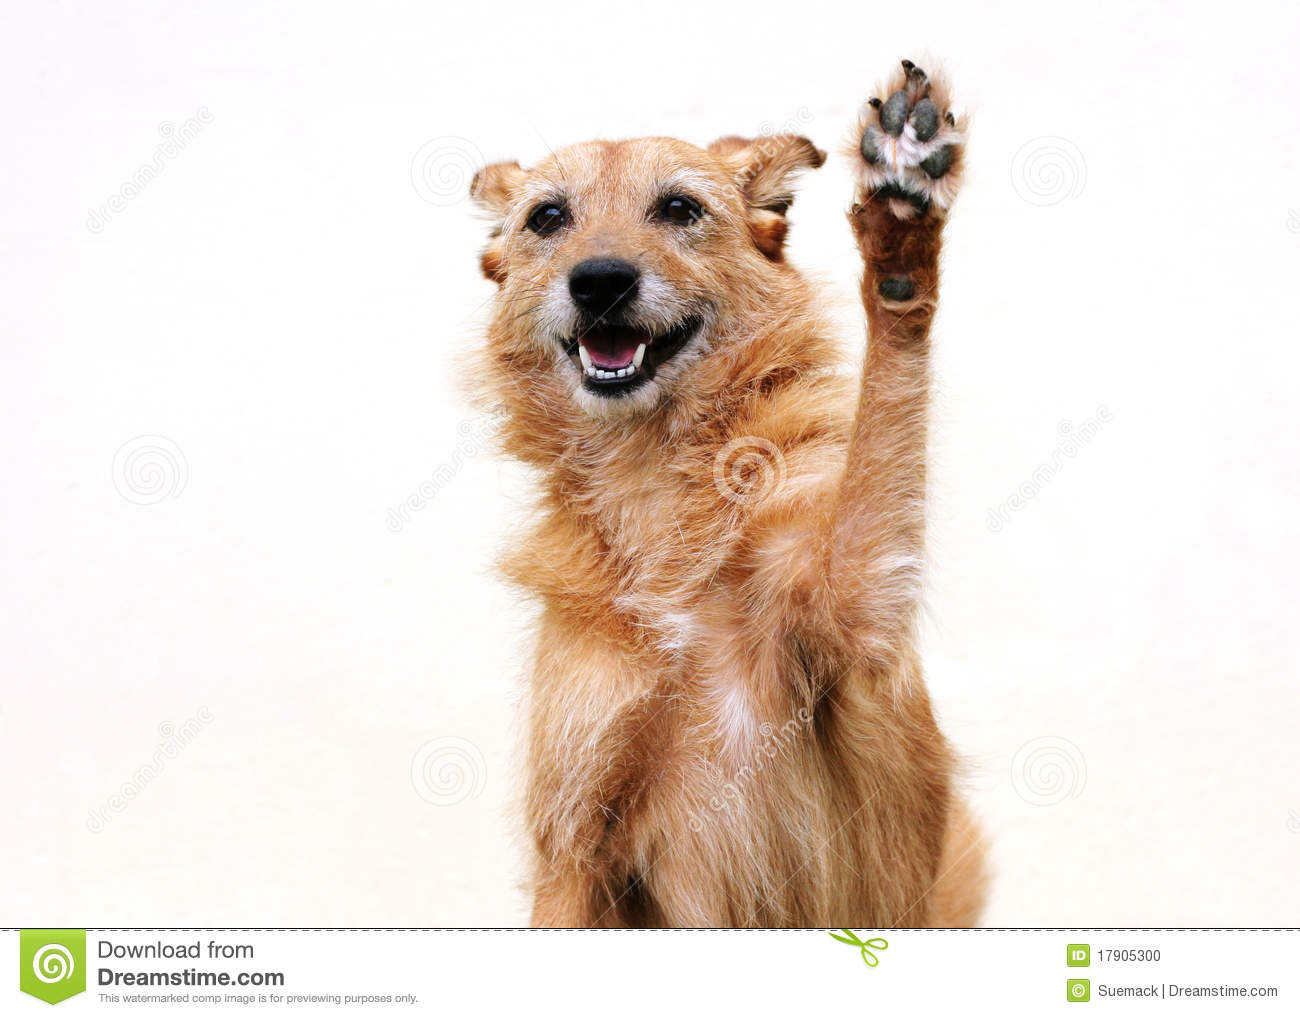 Cute scruffy terrier dog with her paw raised in a high five.